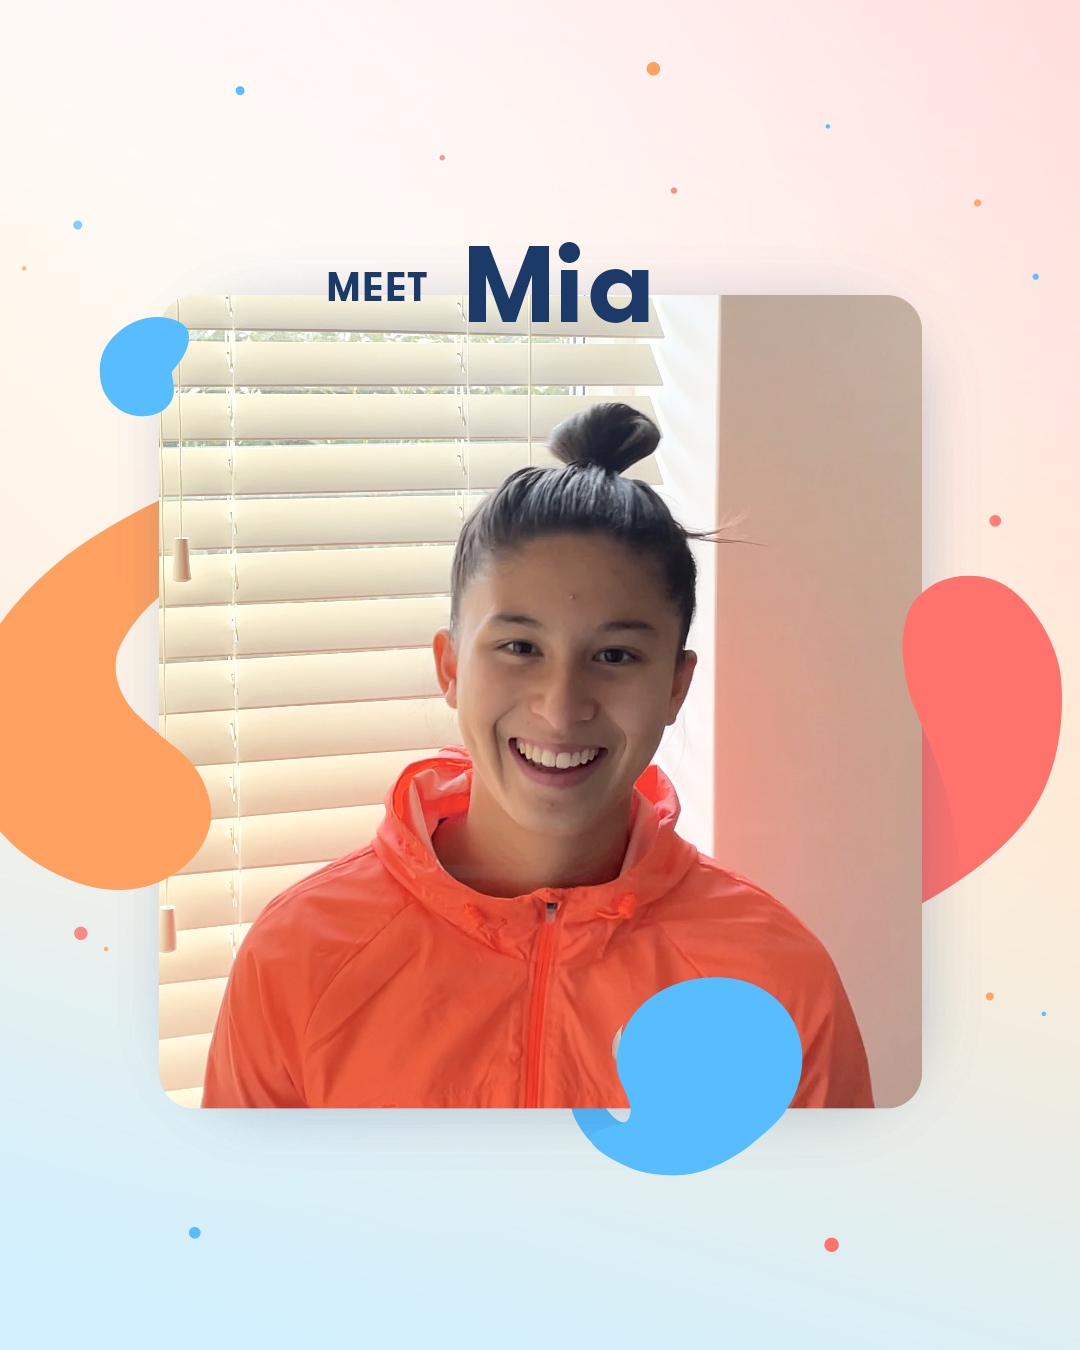 Mia stands with her hair pulled into a tight bun in front of a window, wearing a pink windbreaker.